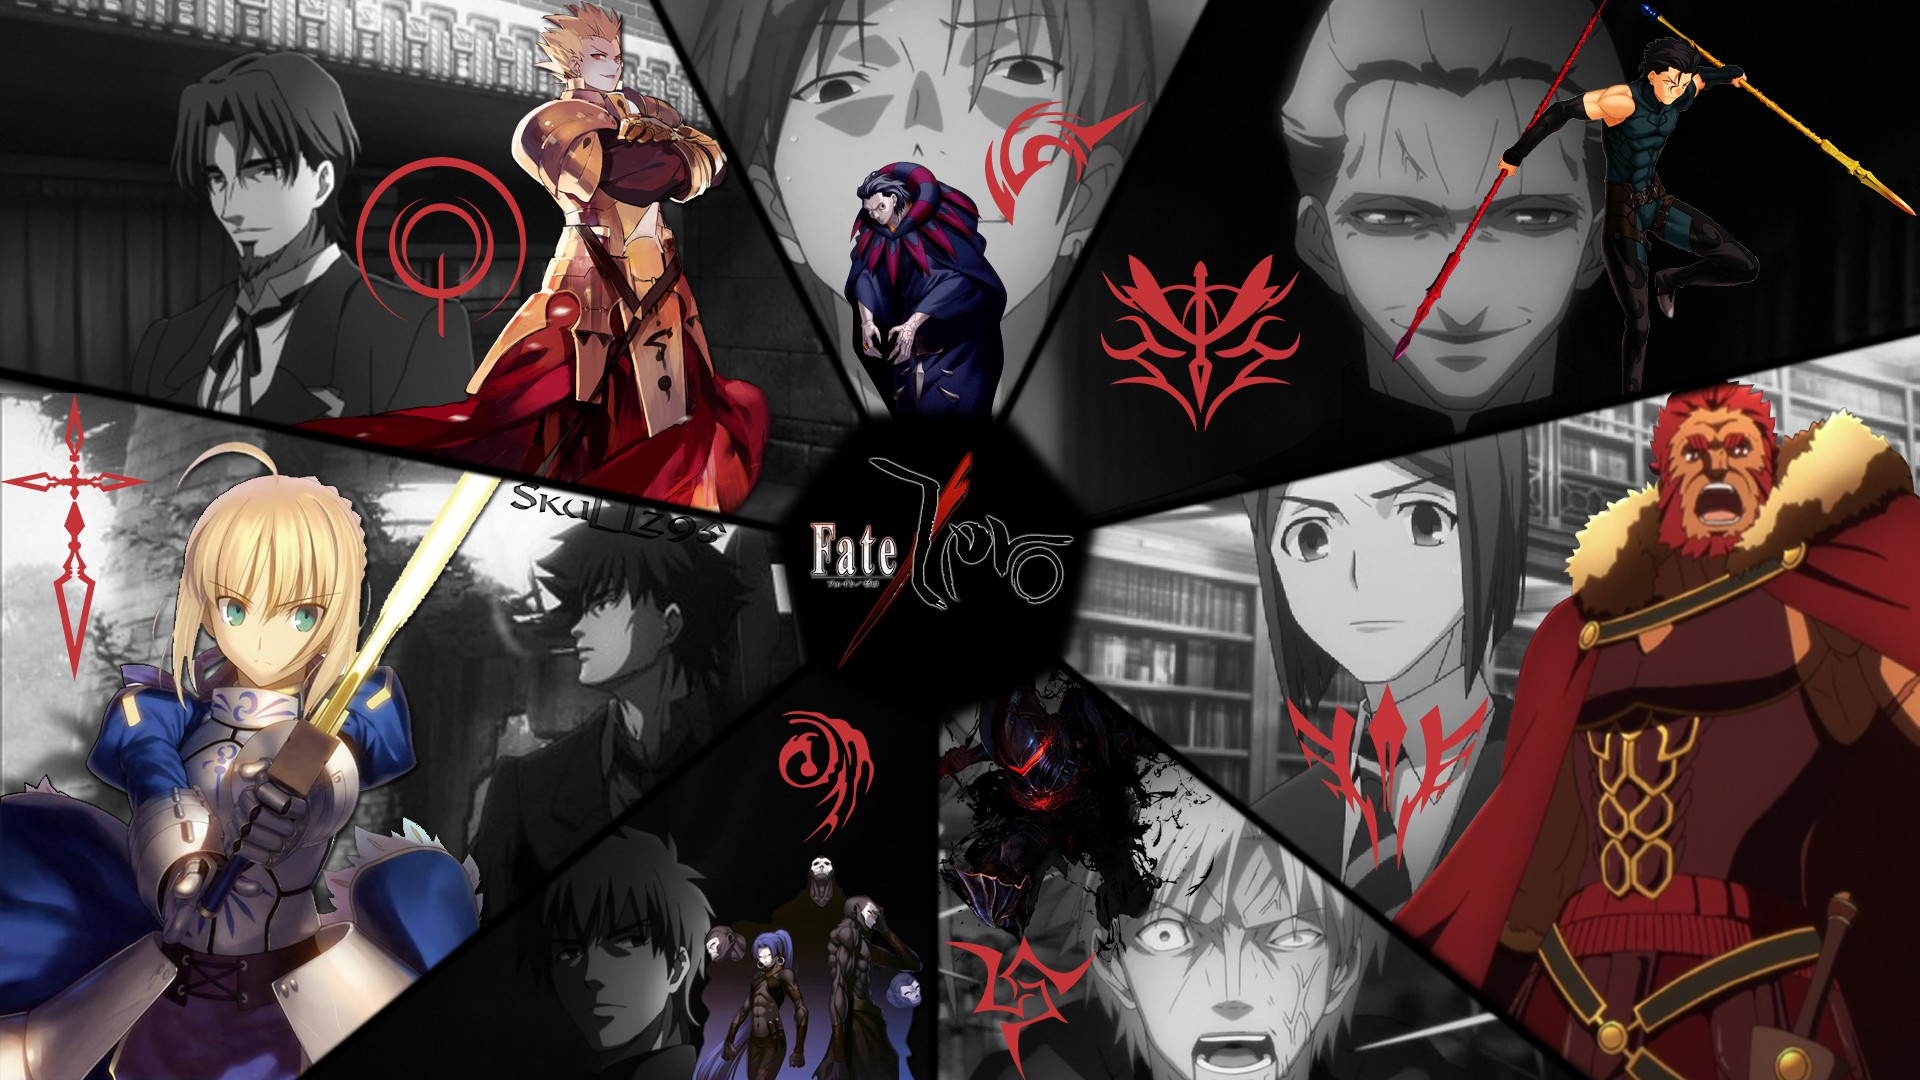 Fate Zero Wallpaper Download Free High Resolution Backgrounds